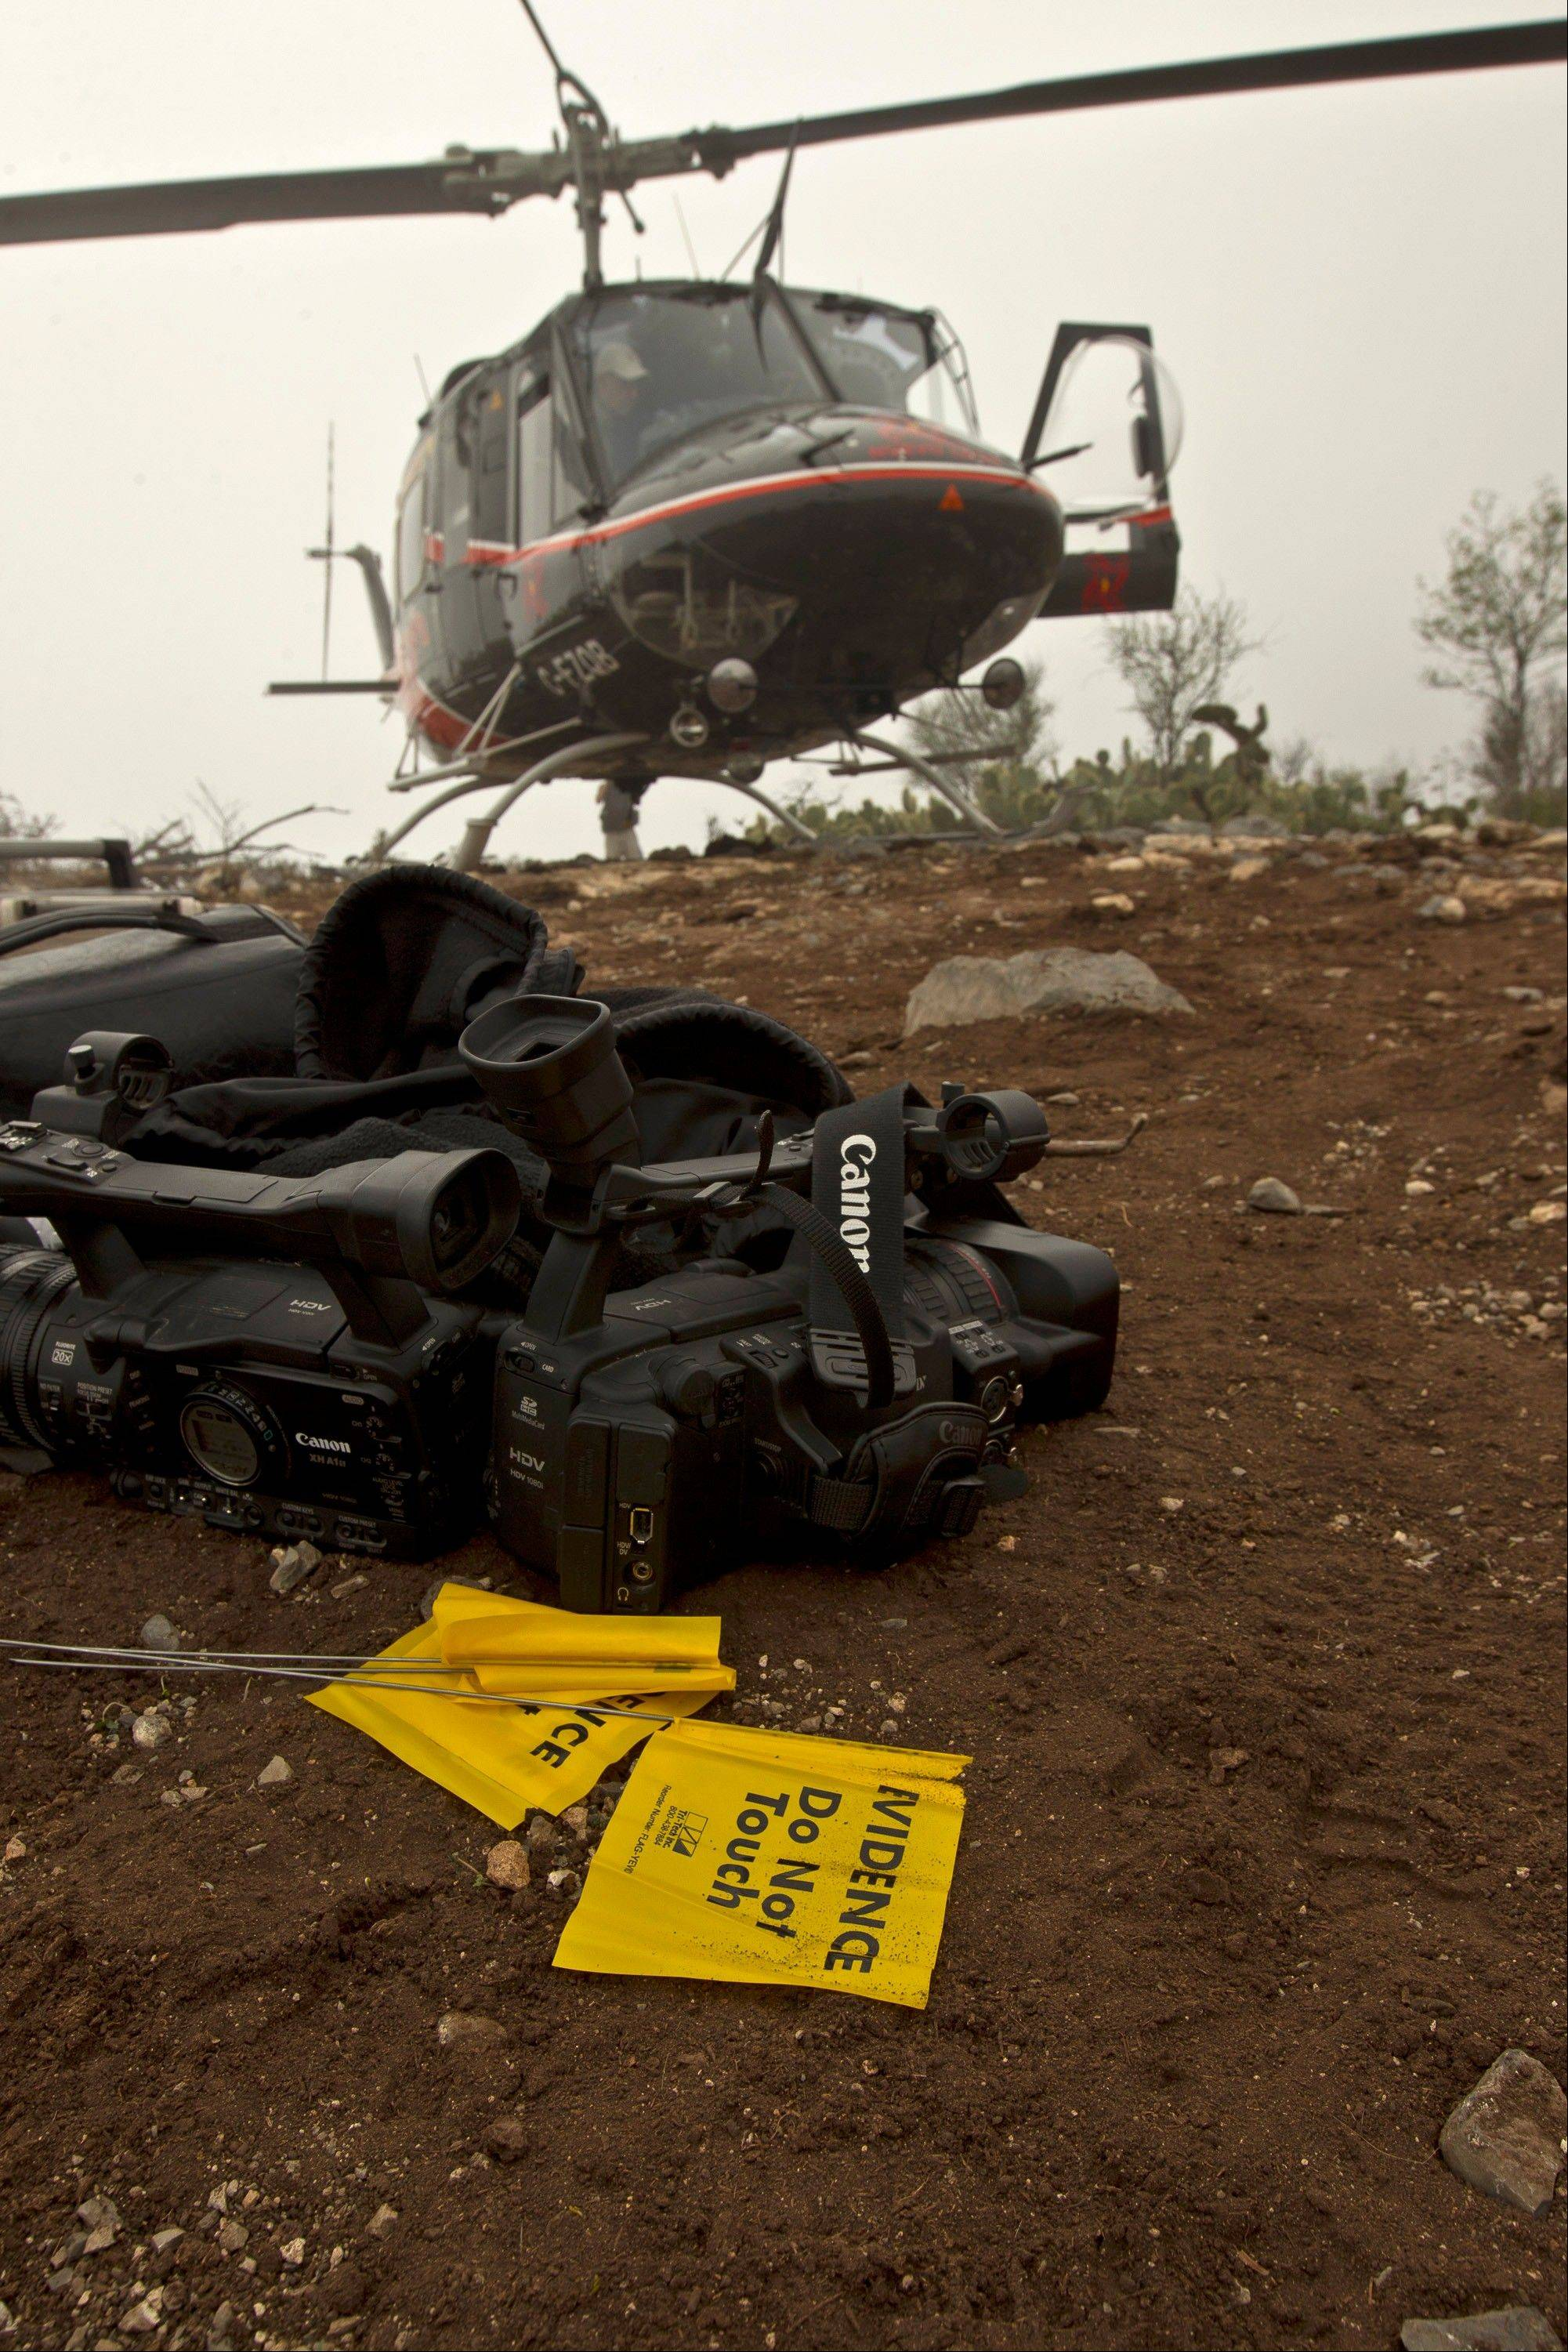 Video cameras and flags used by the forensic experts are unloaded from a helicopter on top of the hill next to the canyon where an airplane crash occurred a day earlier claiming the life of U.S.-born singer Jenni Rivera near the town of Iturbude, Mexico, Monday Dec. 10, 2012. The crash in northern Mexico also killed six friends and co-workers.